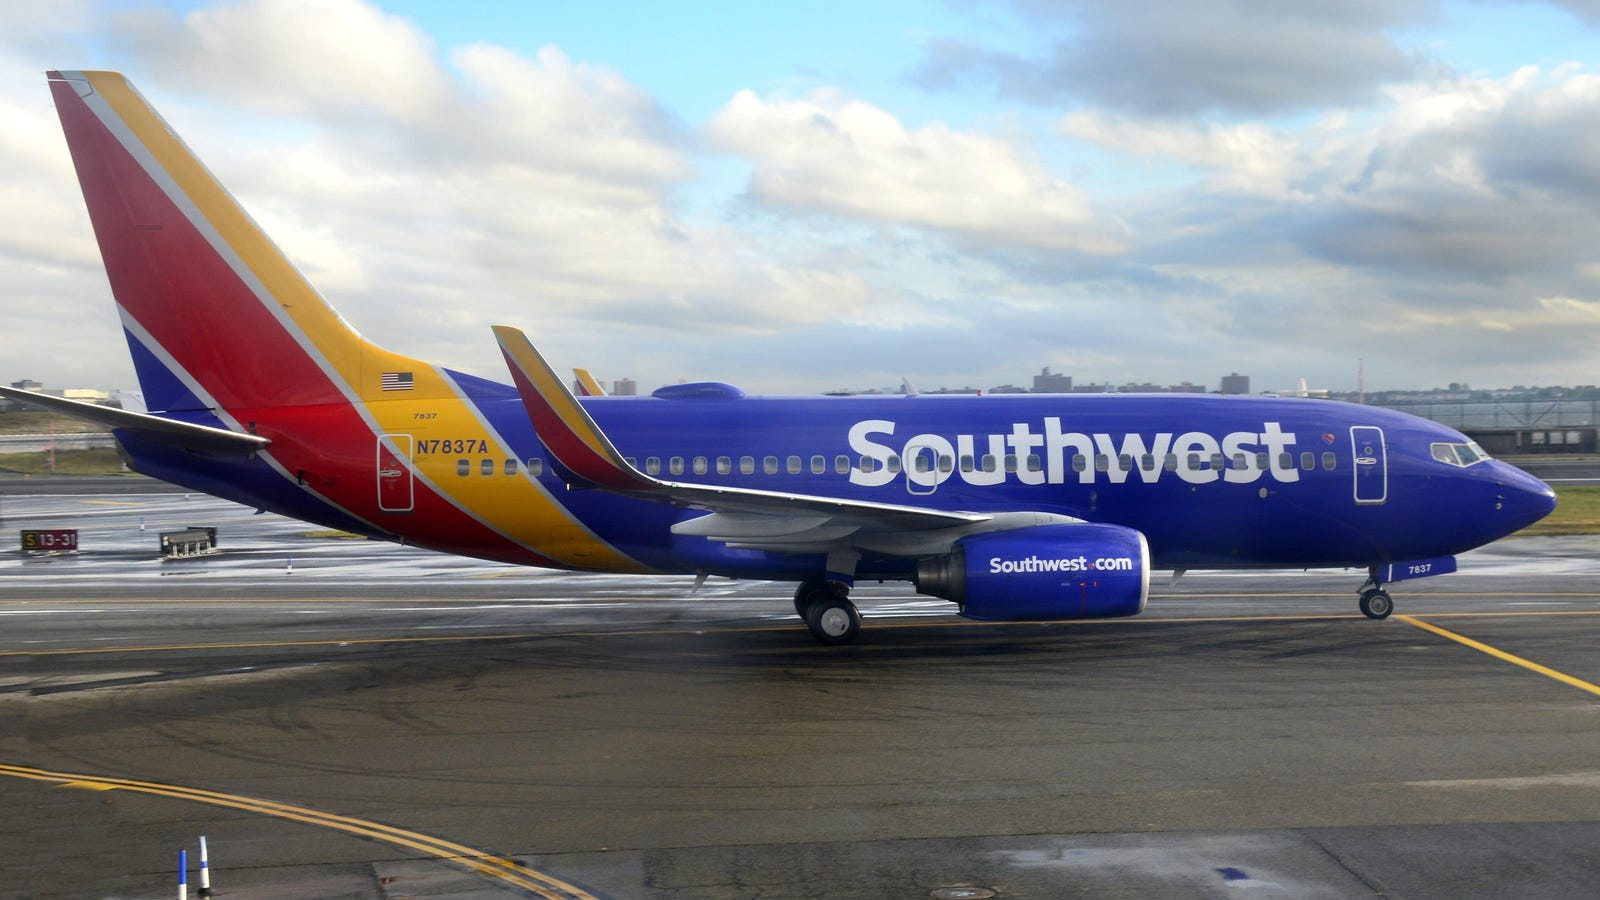 Southwest Is Having a $49 Flight Sale This Week